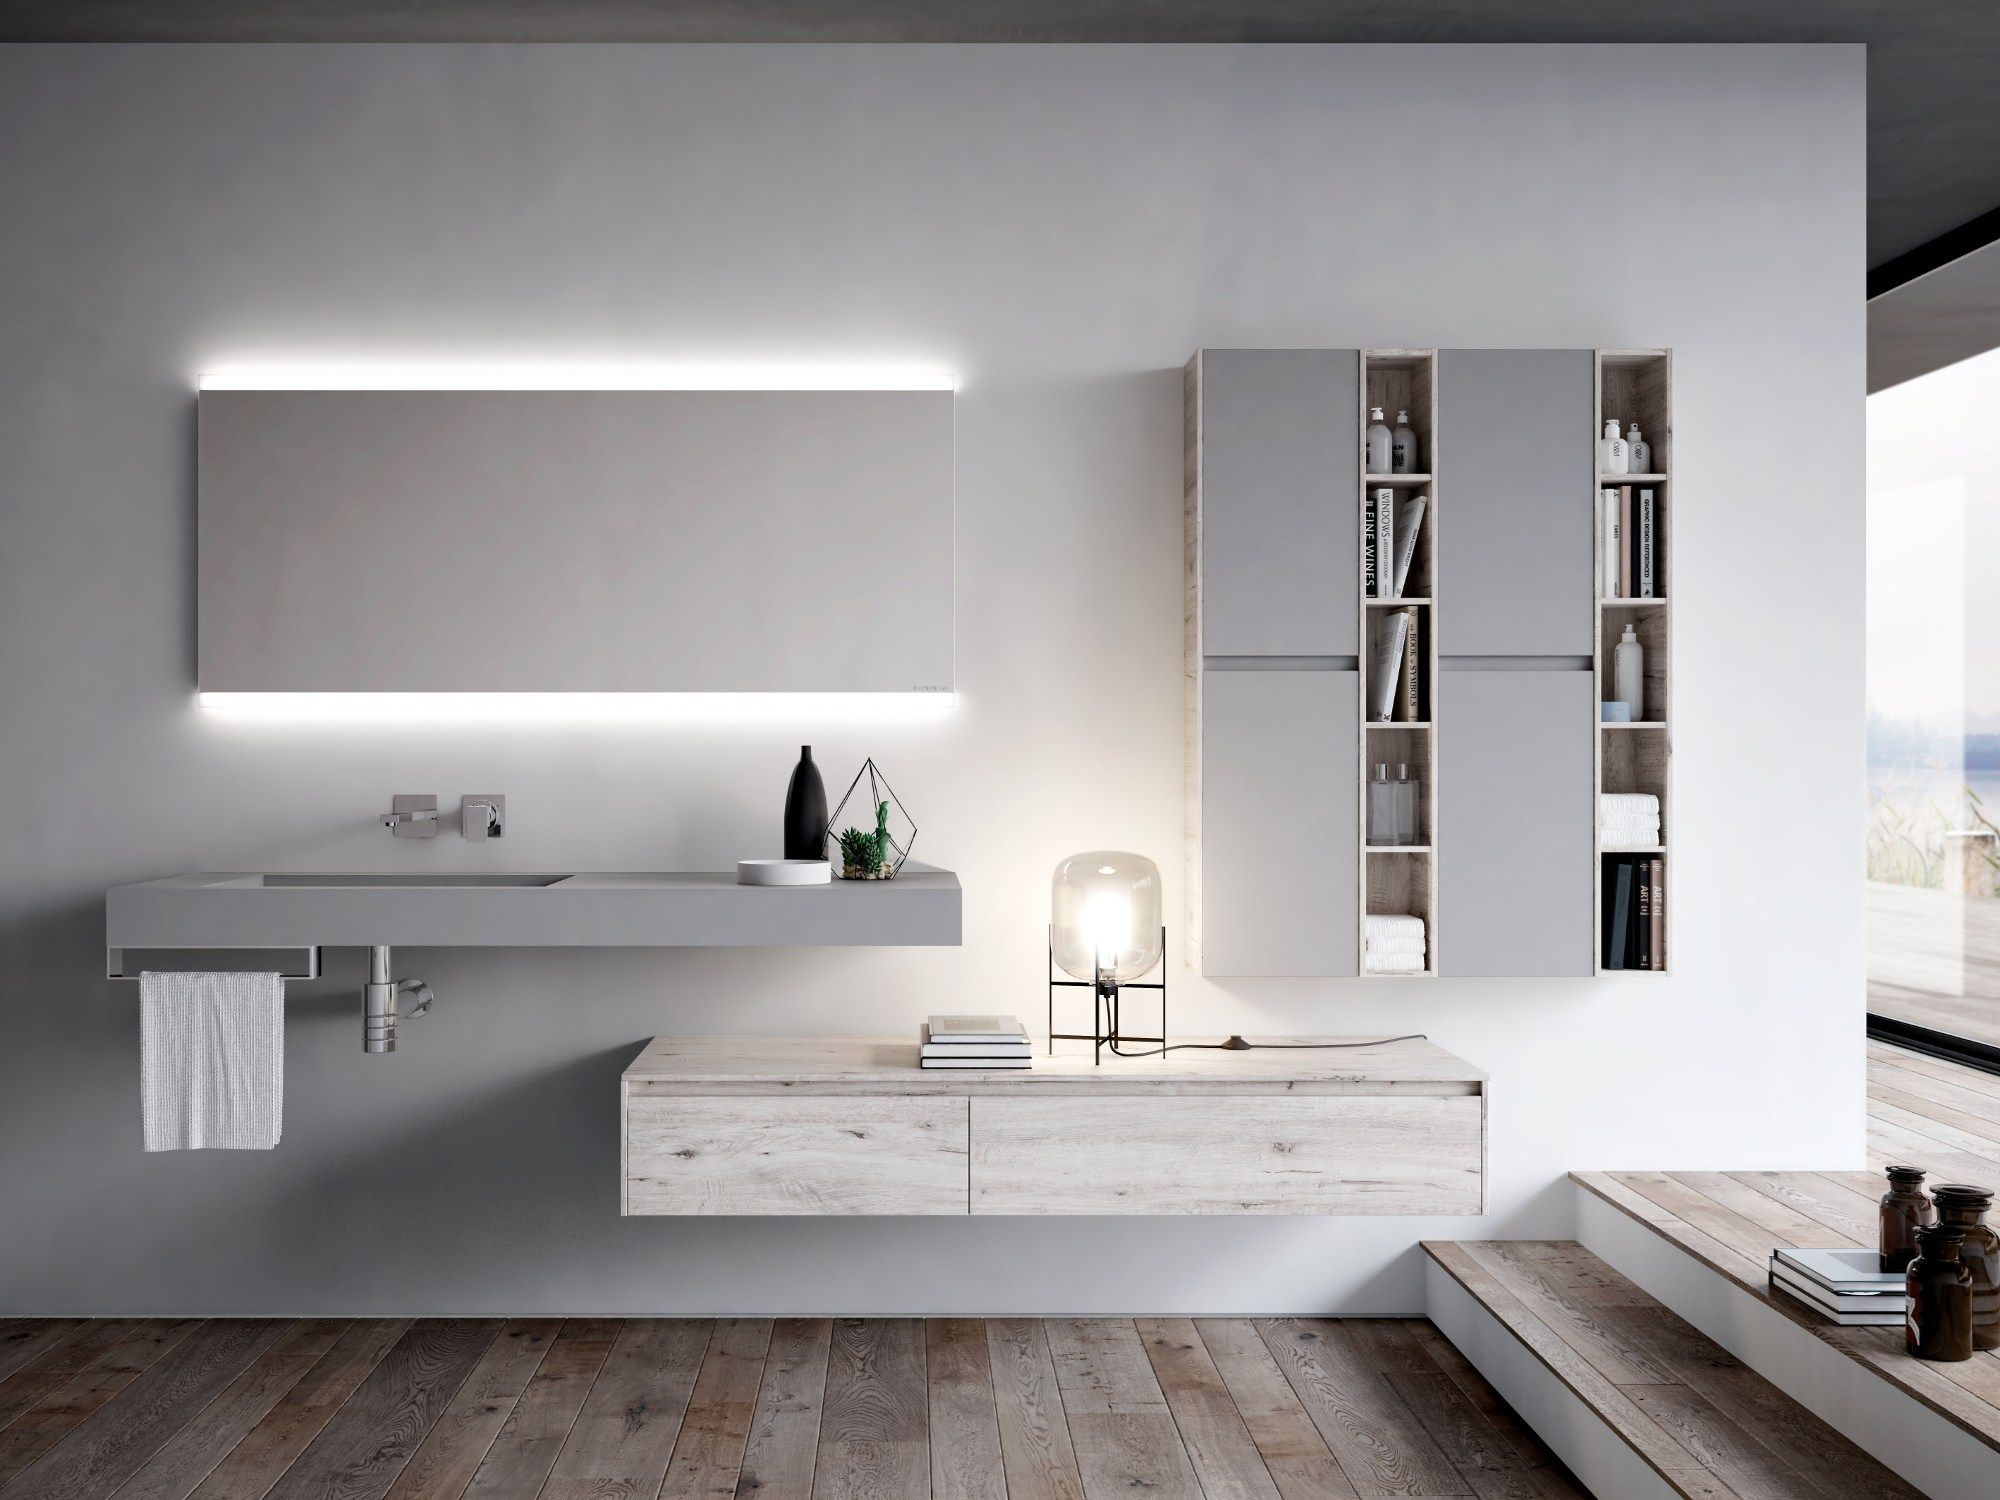 Wunderbar NYÙ 14 Bathroom Furniture Set By IdeaGroup